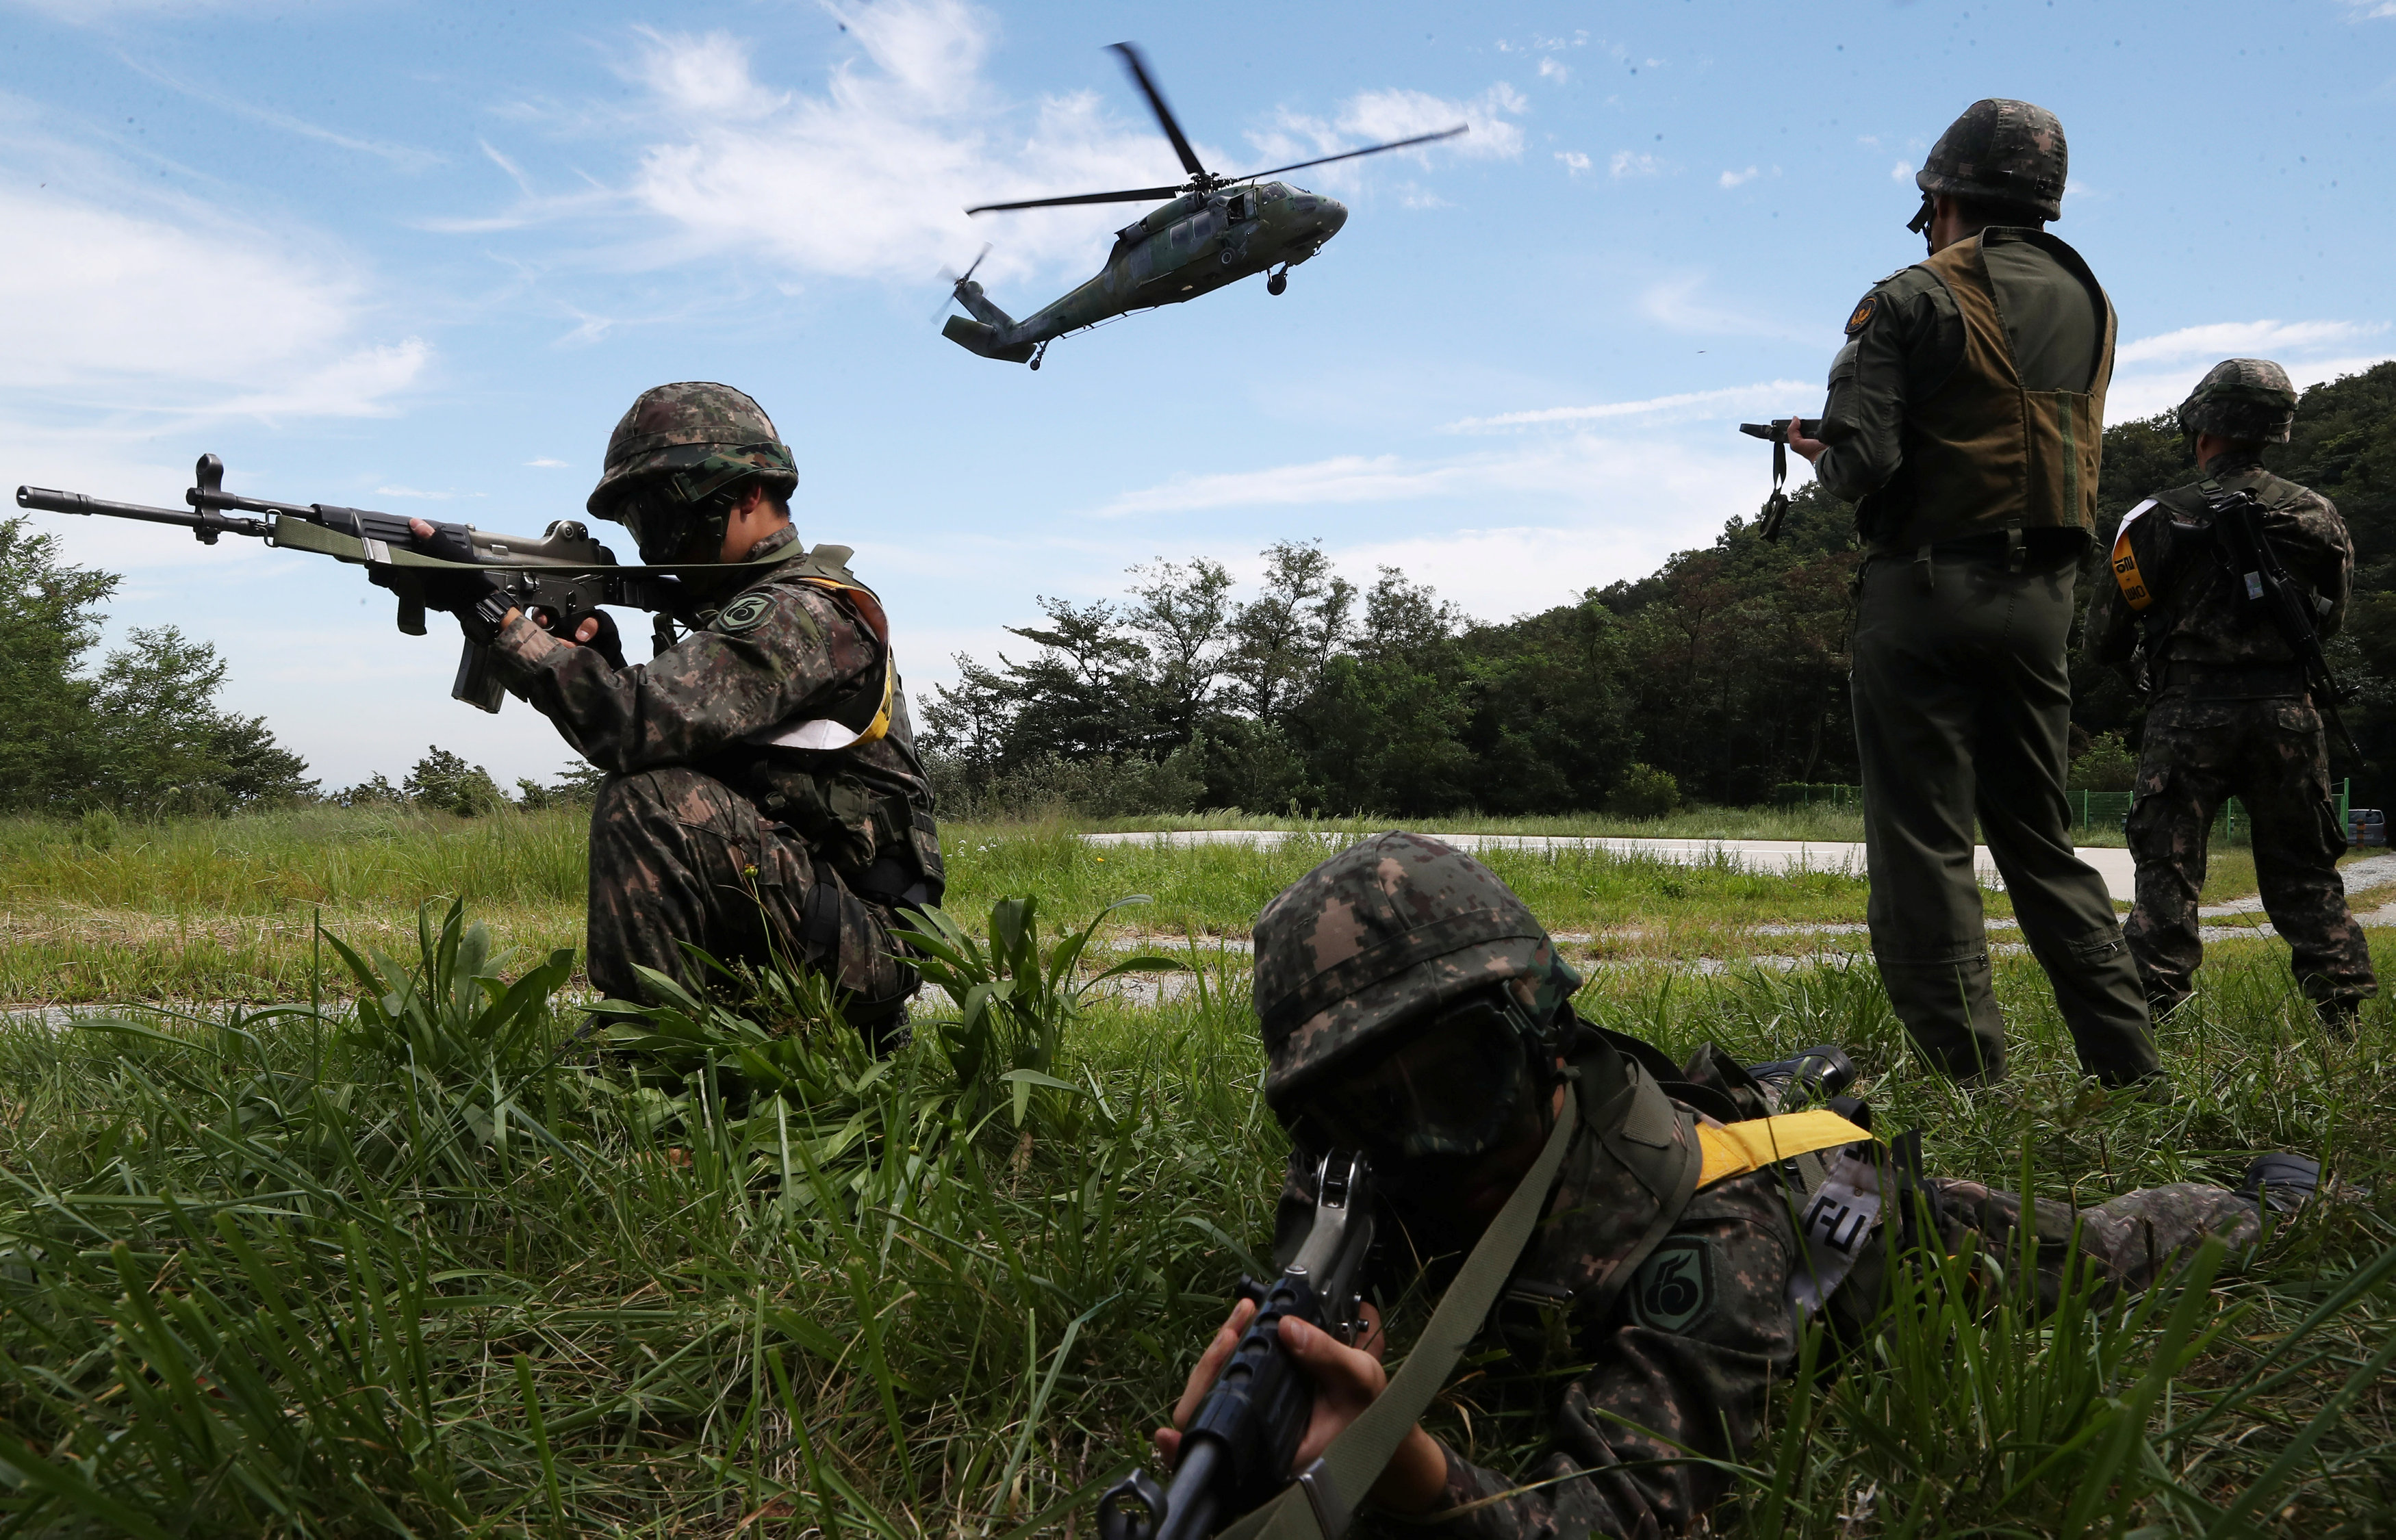 South Korean soldiers take part in a military drill which held as a part of the Ulchi Freedom Guardian exercise in Yongin, South Korea on Aug. 29, 2017. (Hong Ki-Won/Yonhap/via REUTERS)